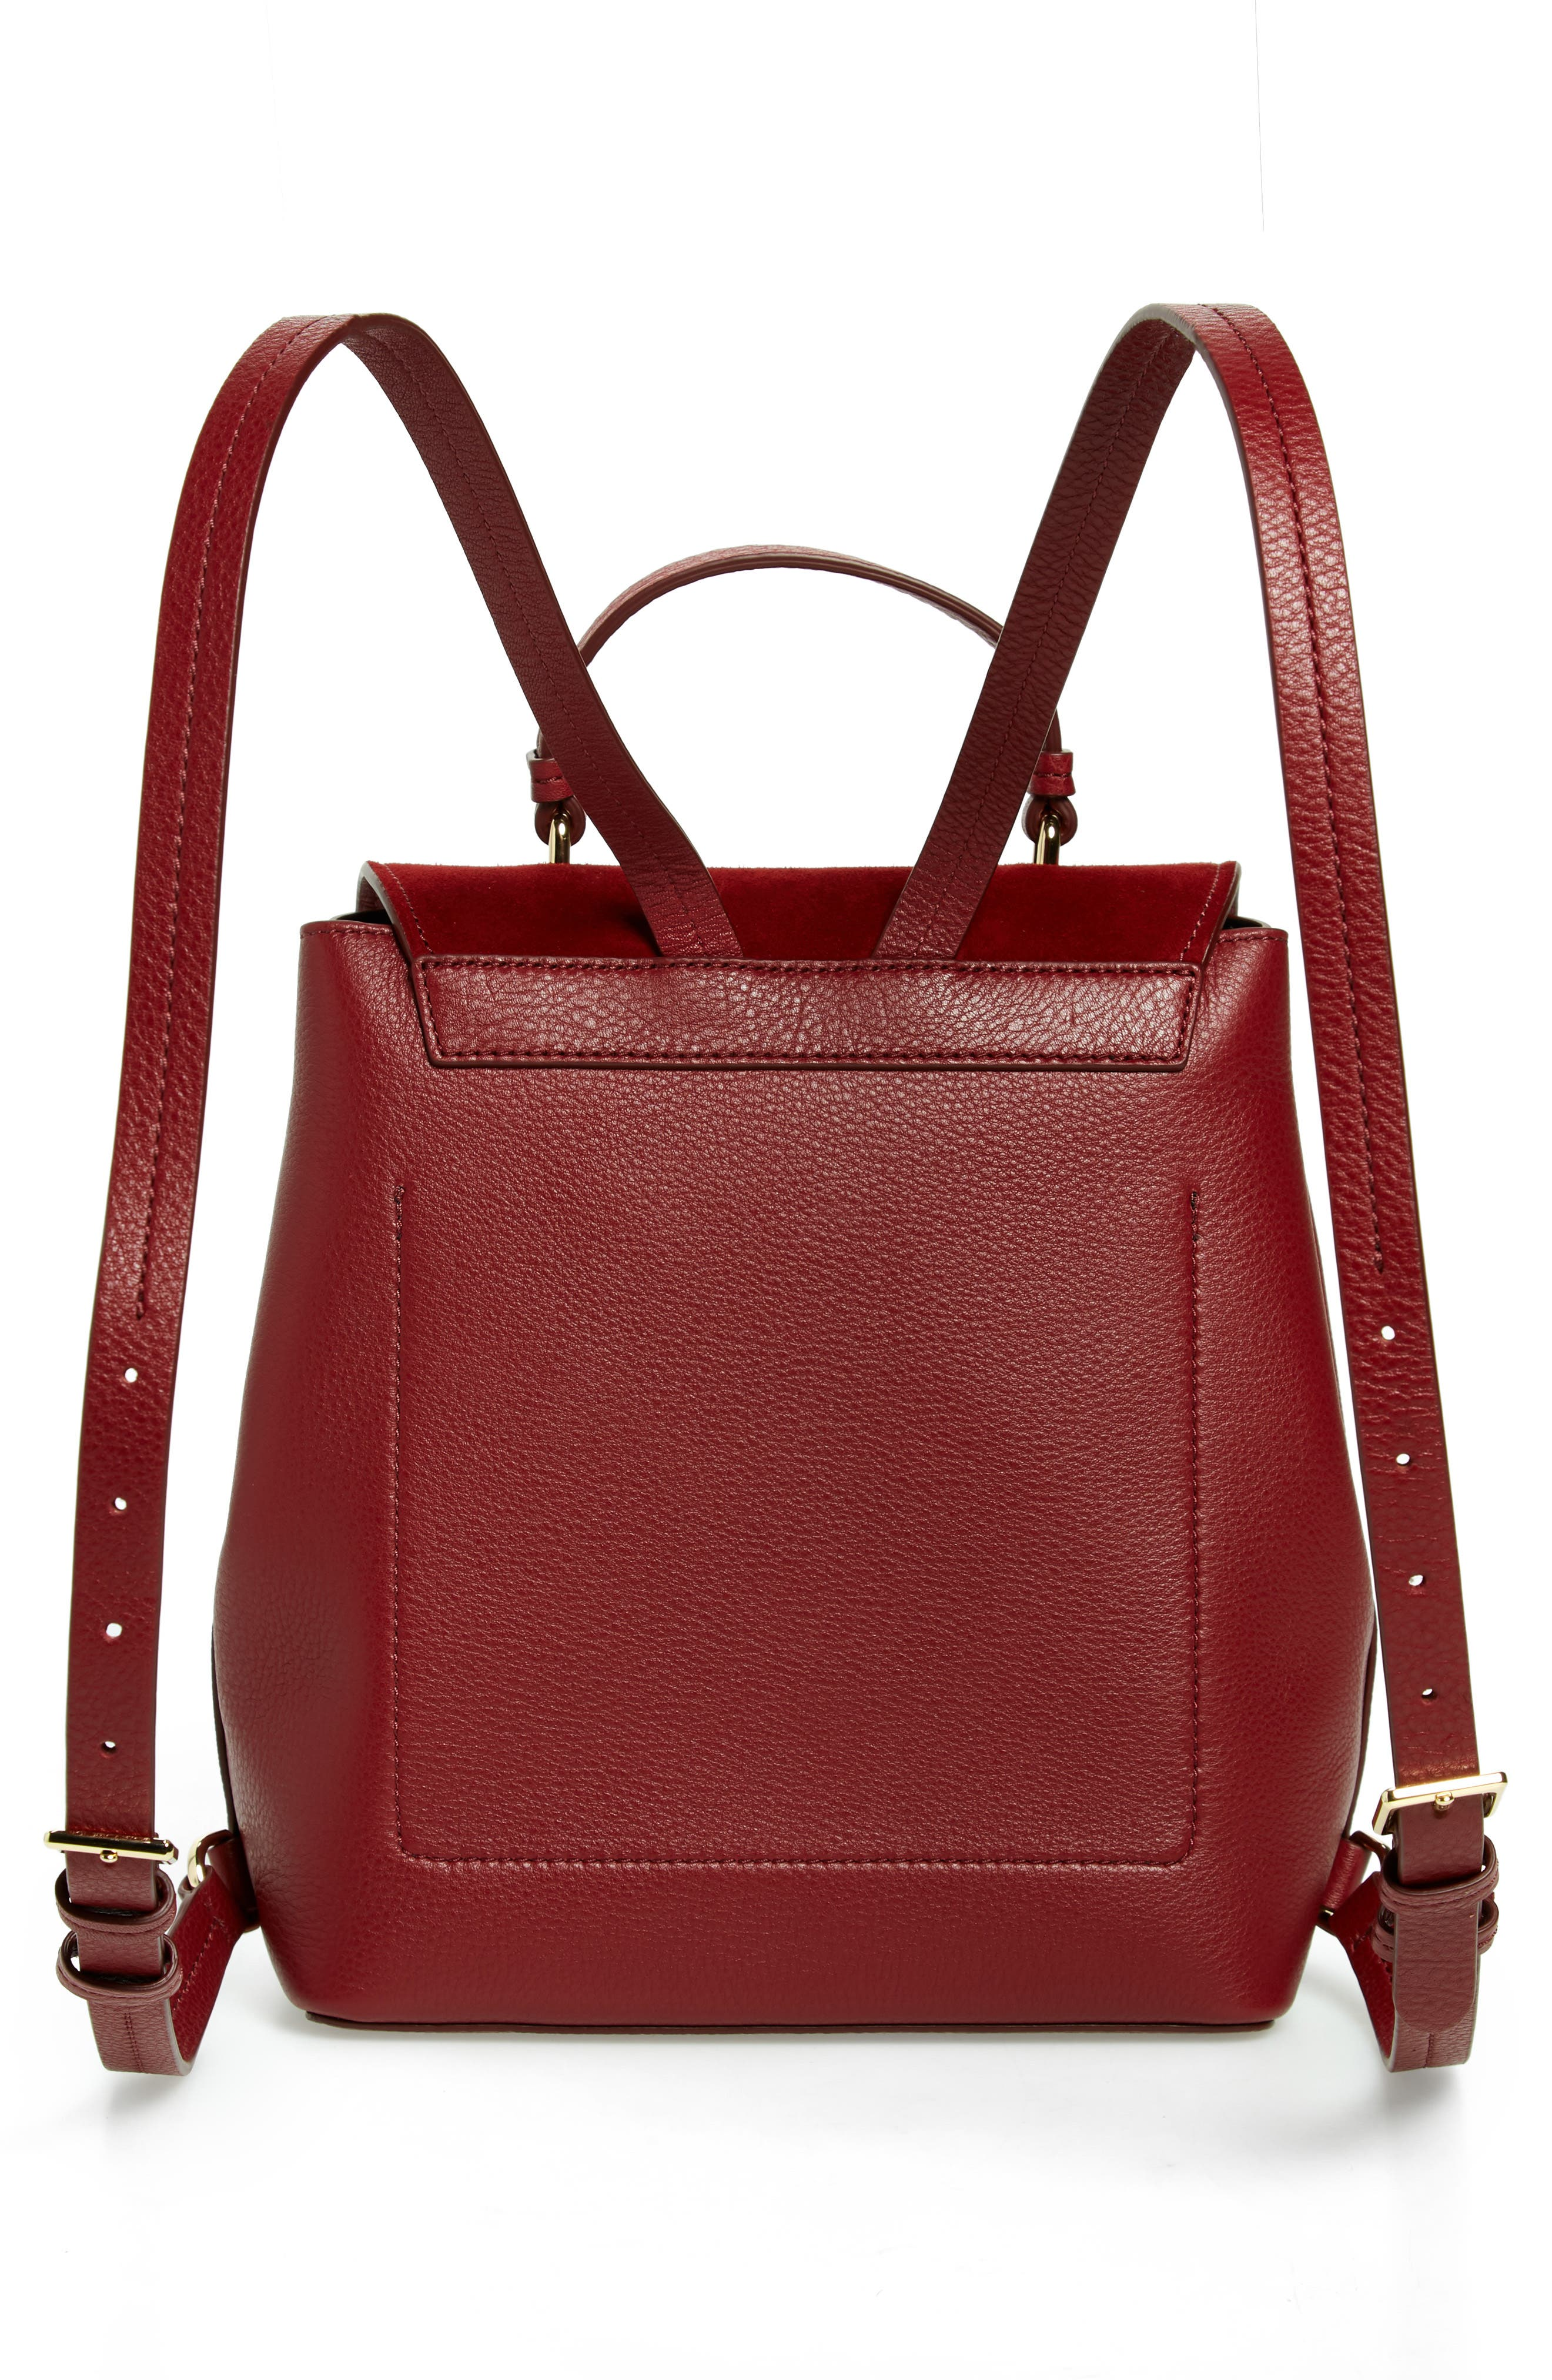 KATE SPADE NEW YORK,                             hayes street - teba leather & suede backpack,                             Alternate thumbnail 3, color,                             600